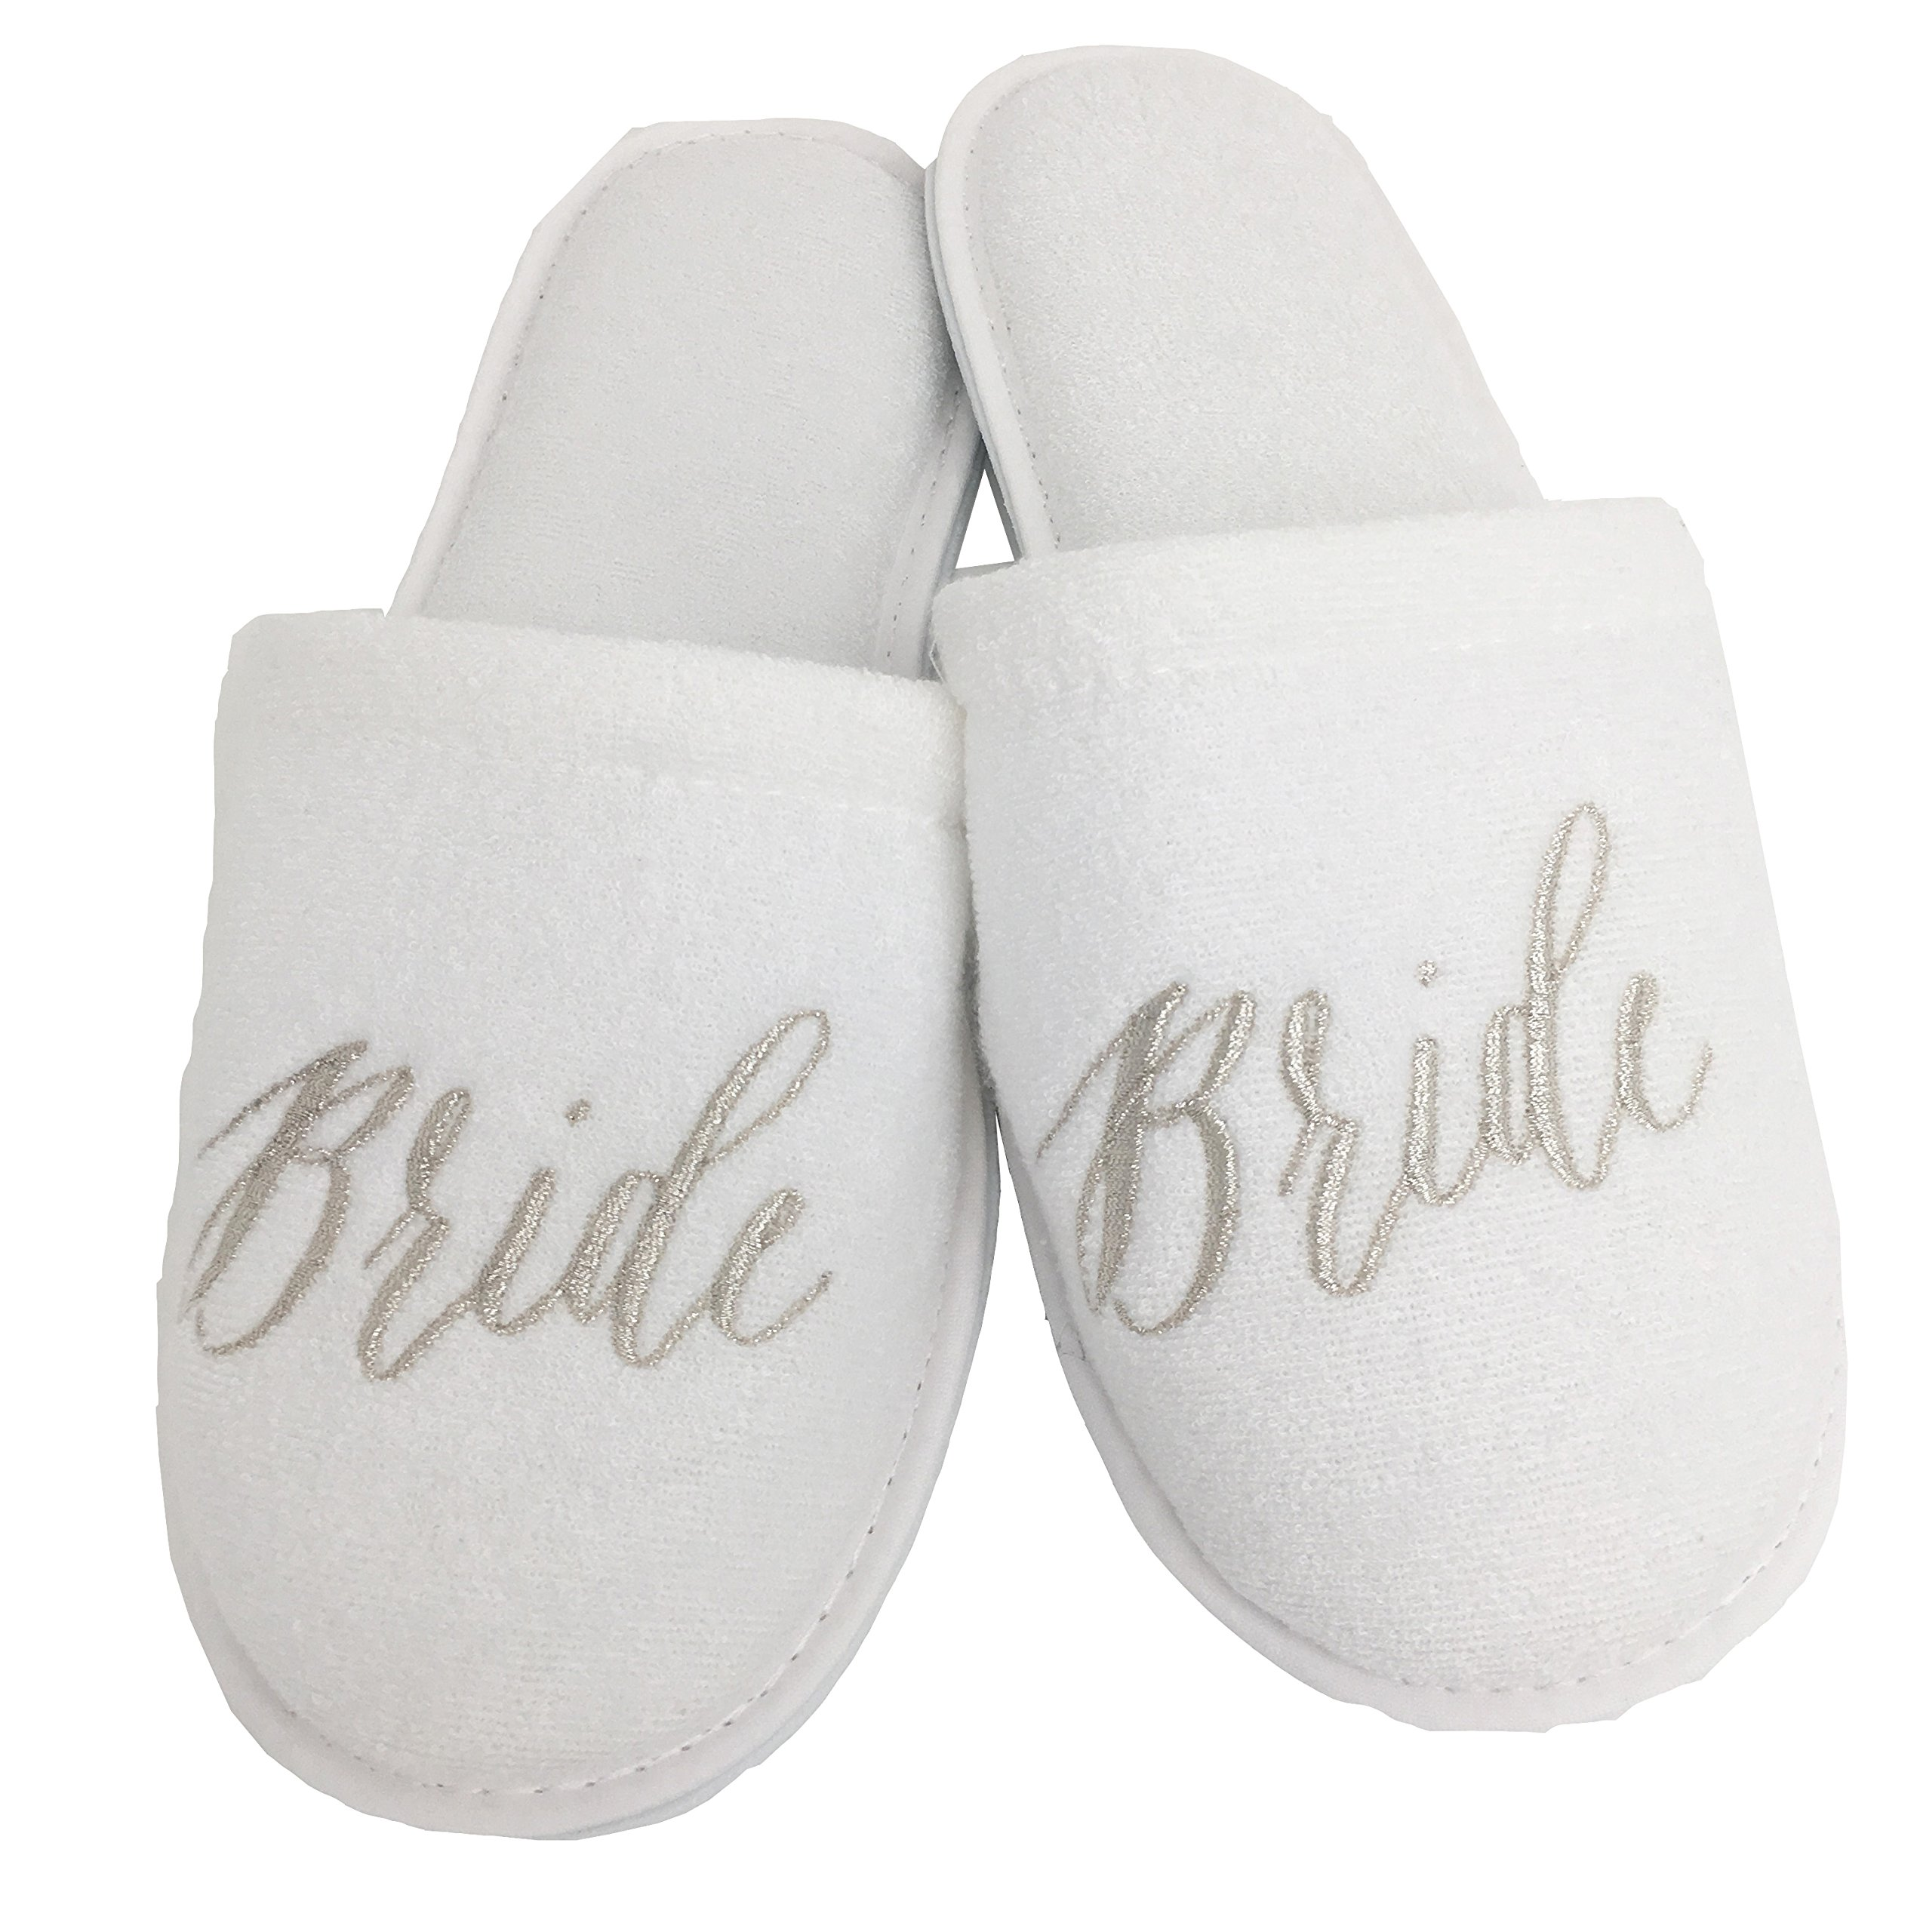 Personalized Slippers Wedding Slippers - (Medium (W6-8), Bride)